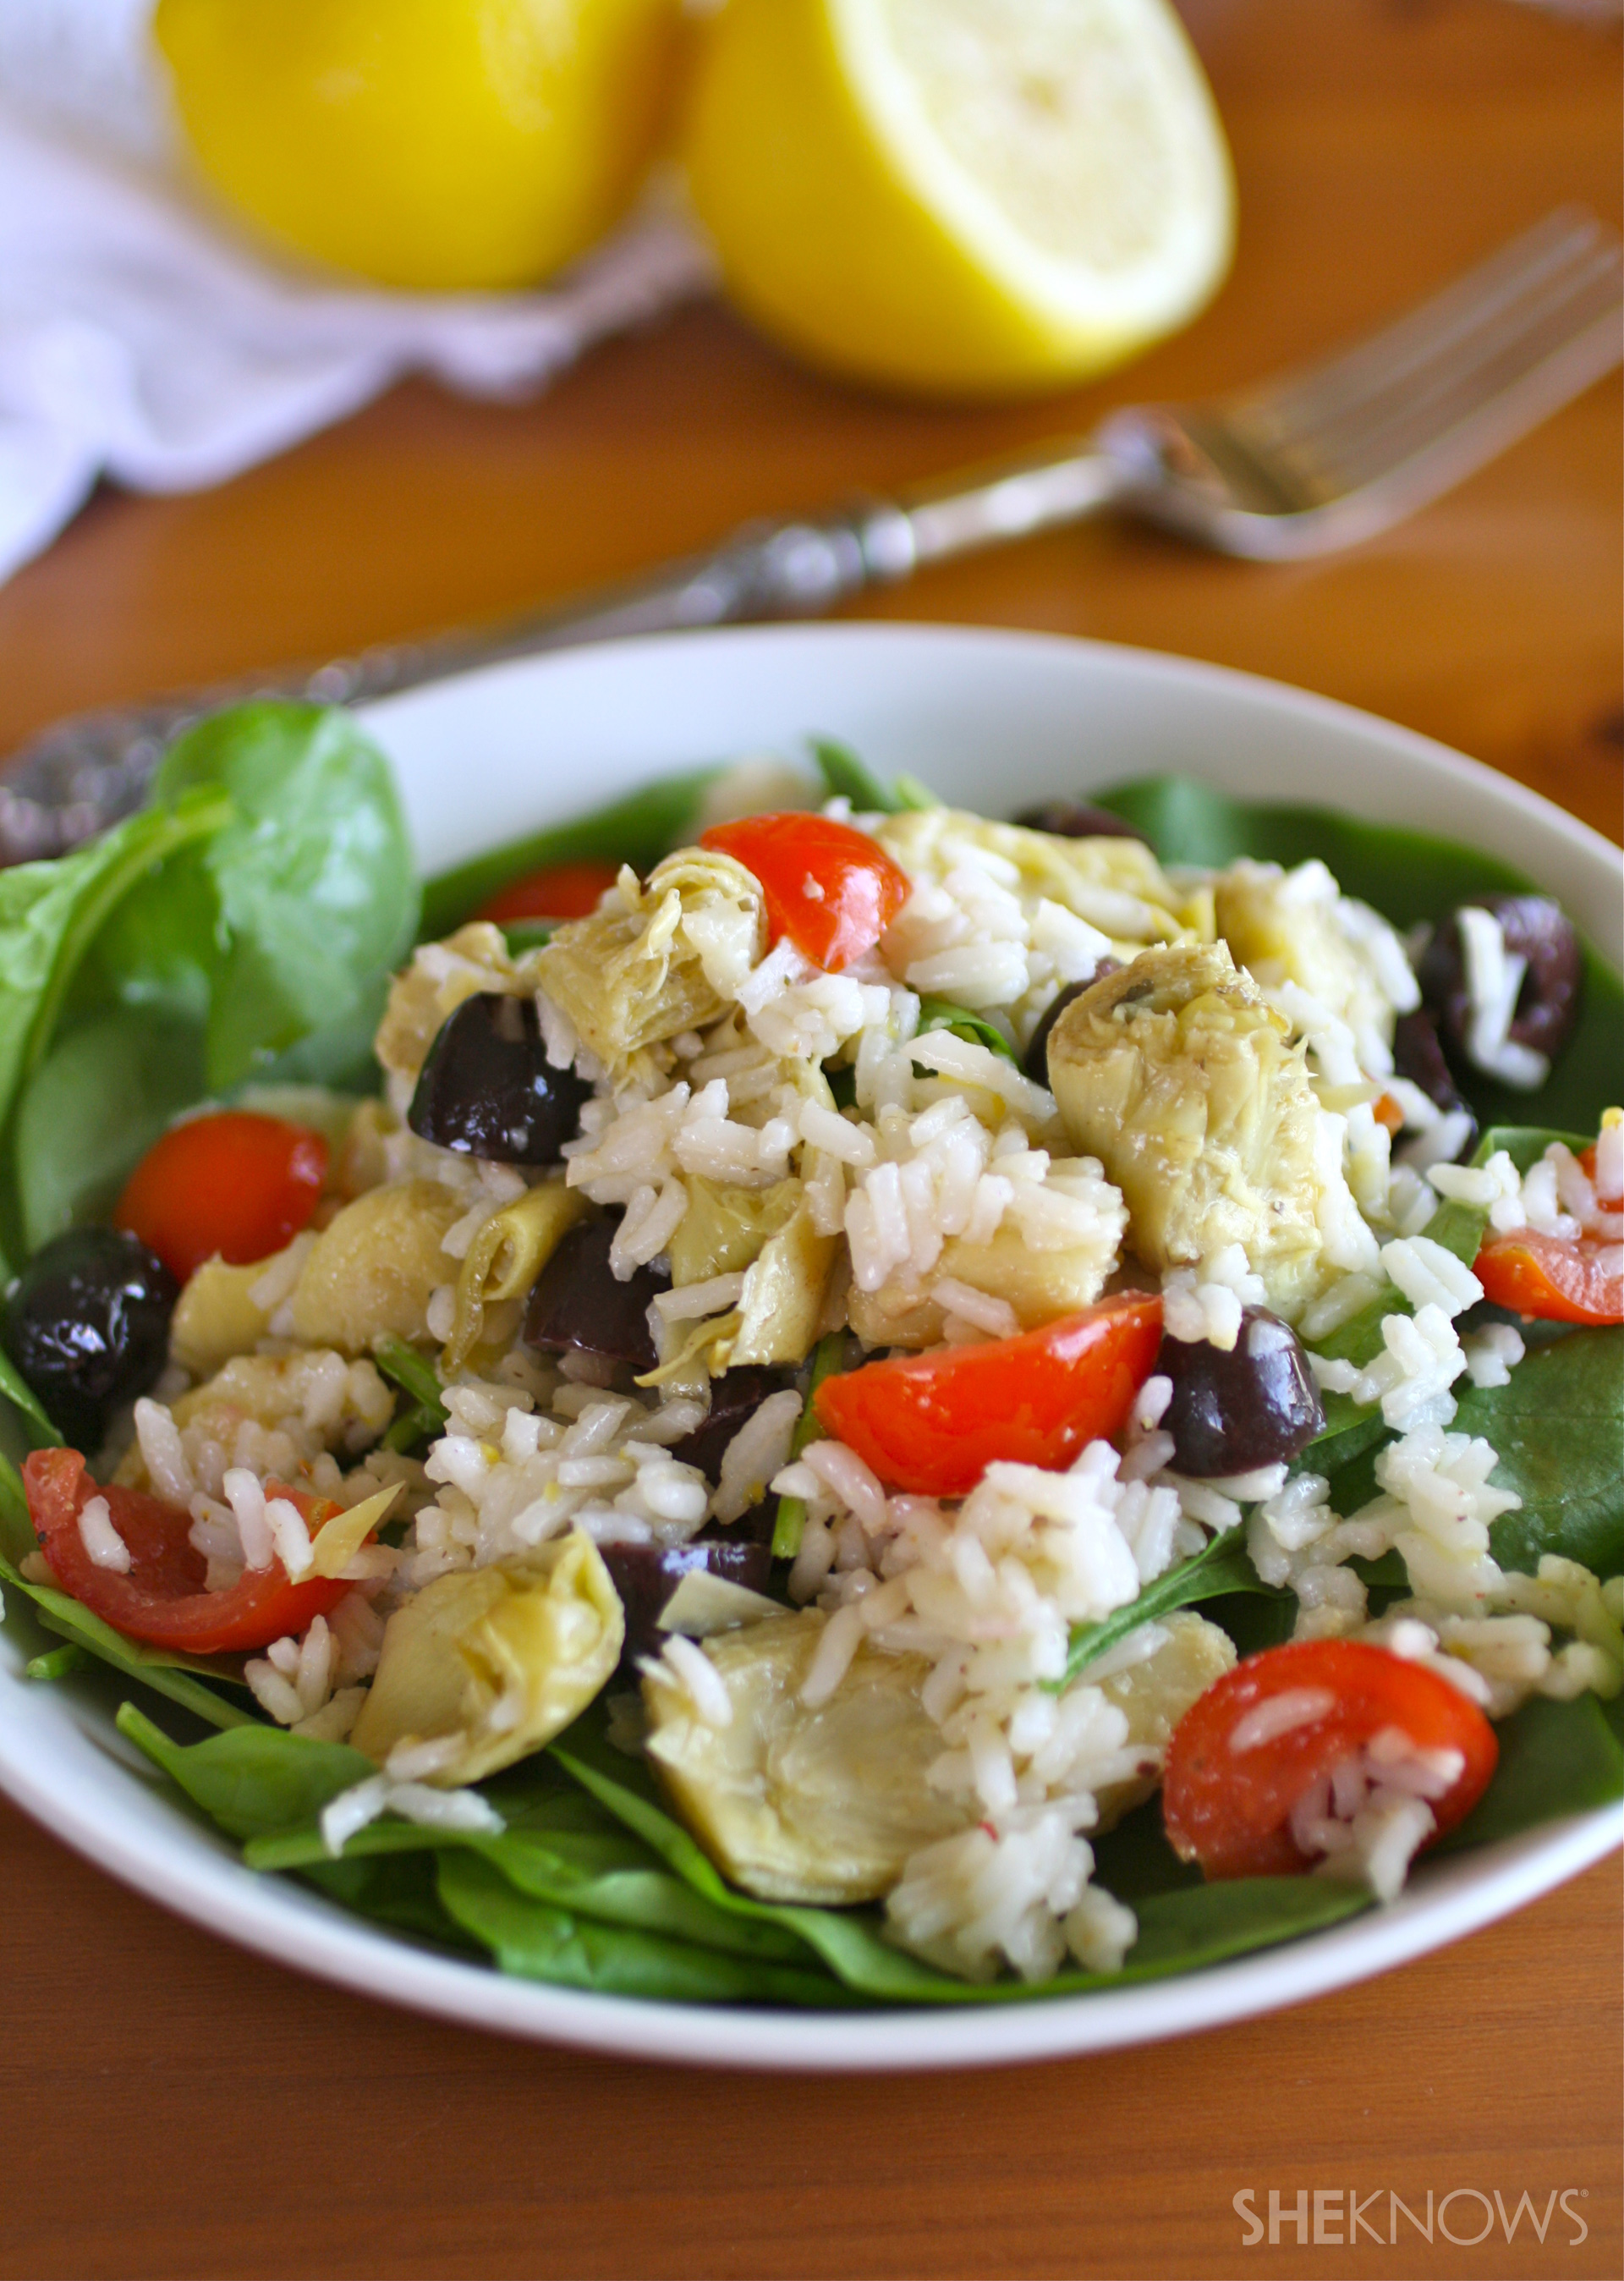 Artichoke and rice salad with lemon-pepper dressing